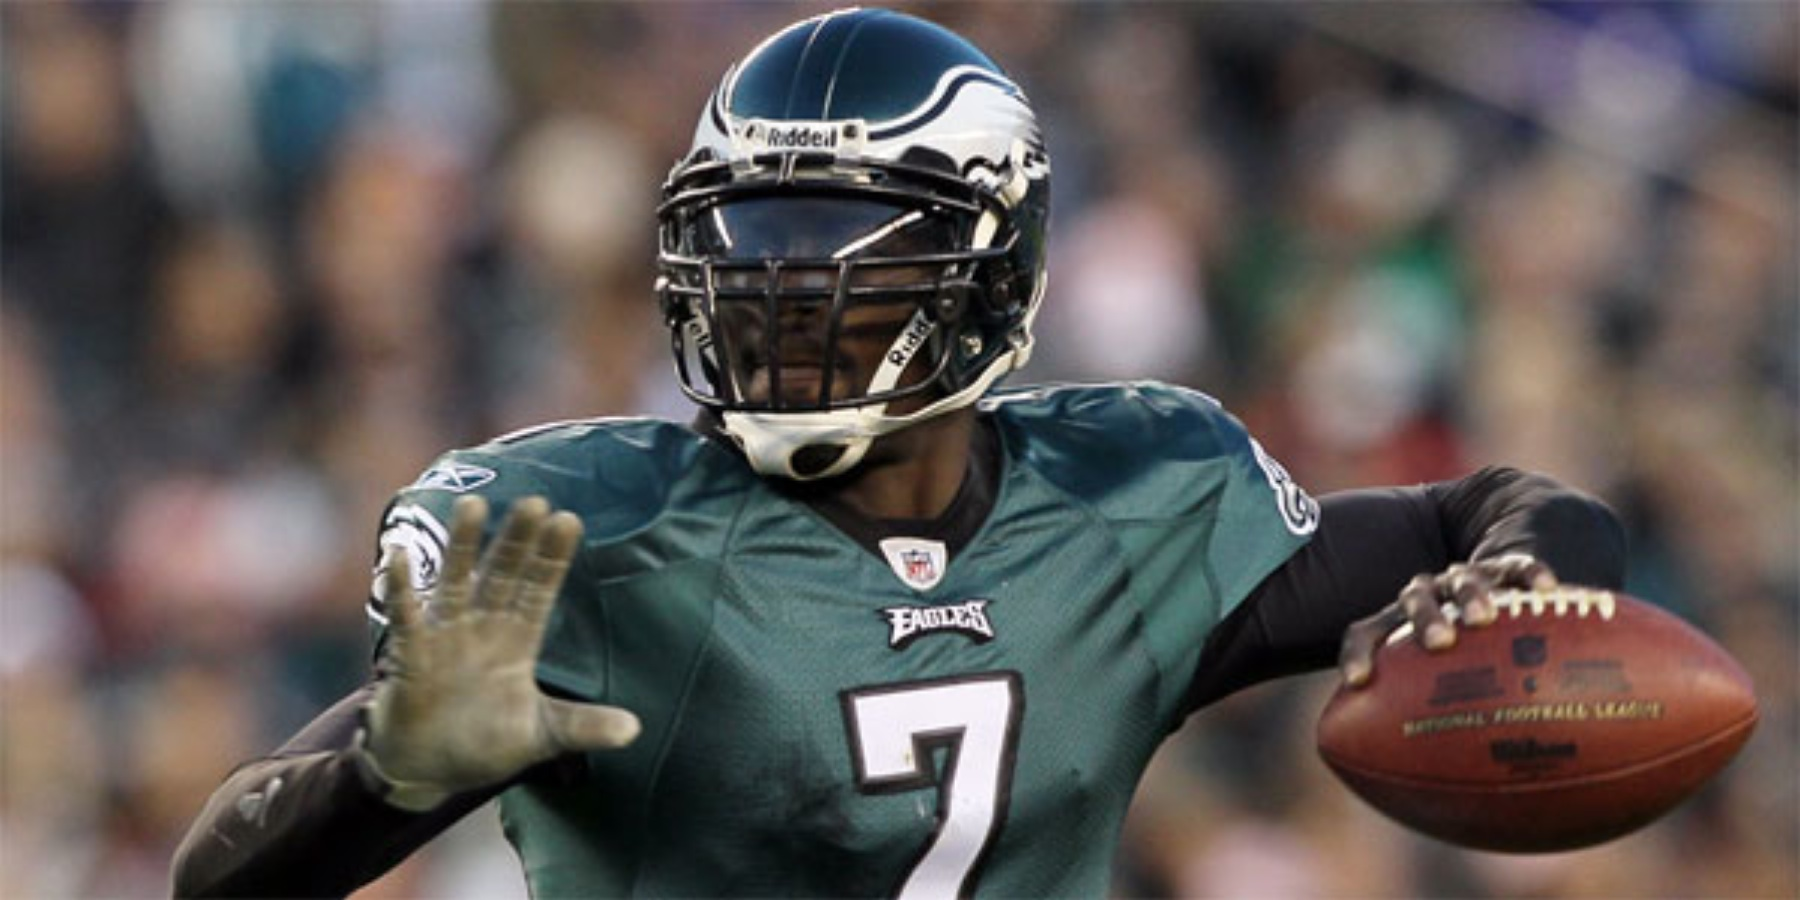 Fall New England Wallpaper 10 Reasons To Root For Michael Vick Huffpost